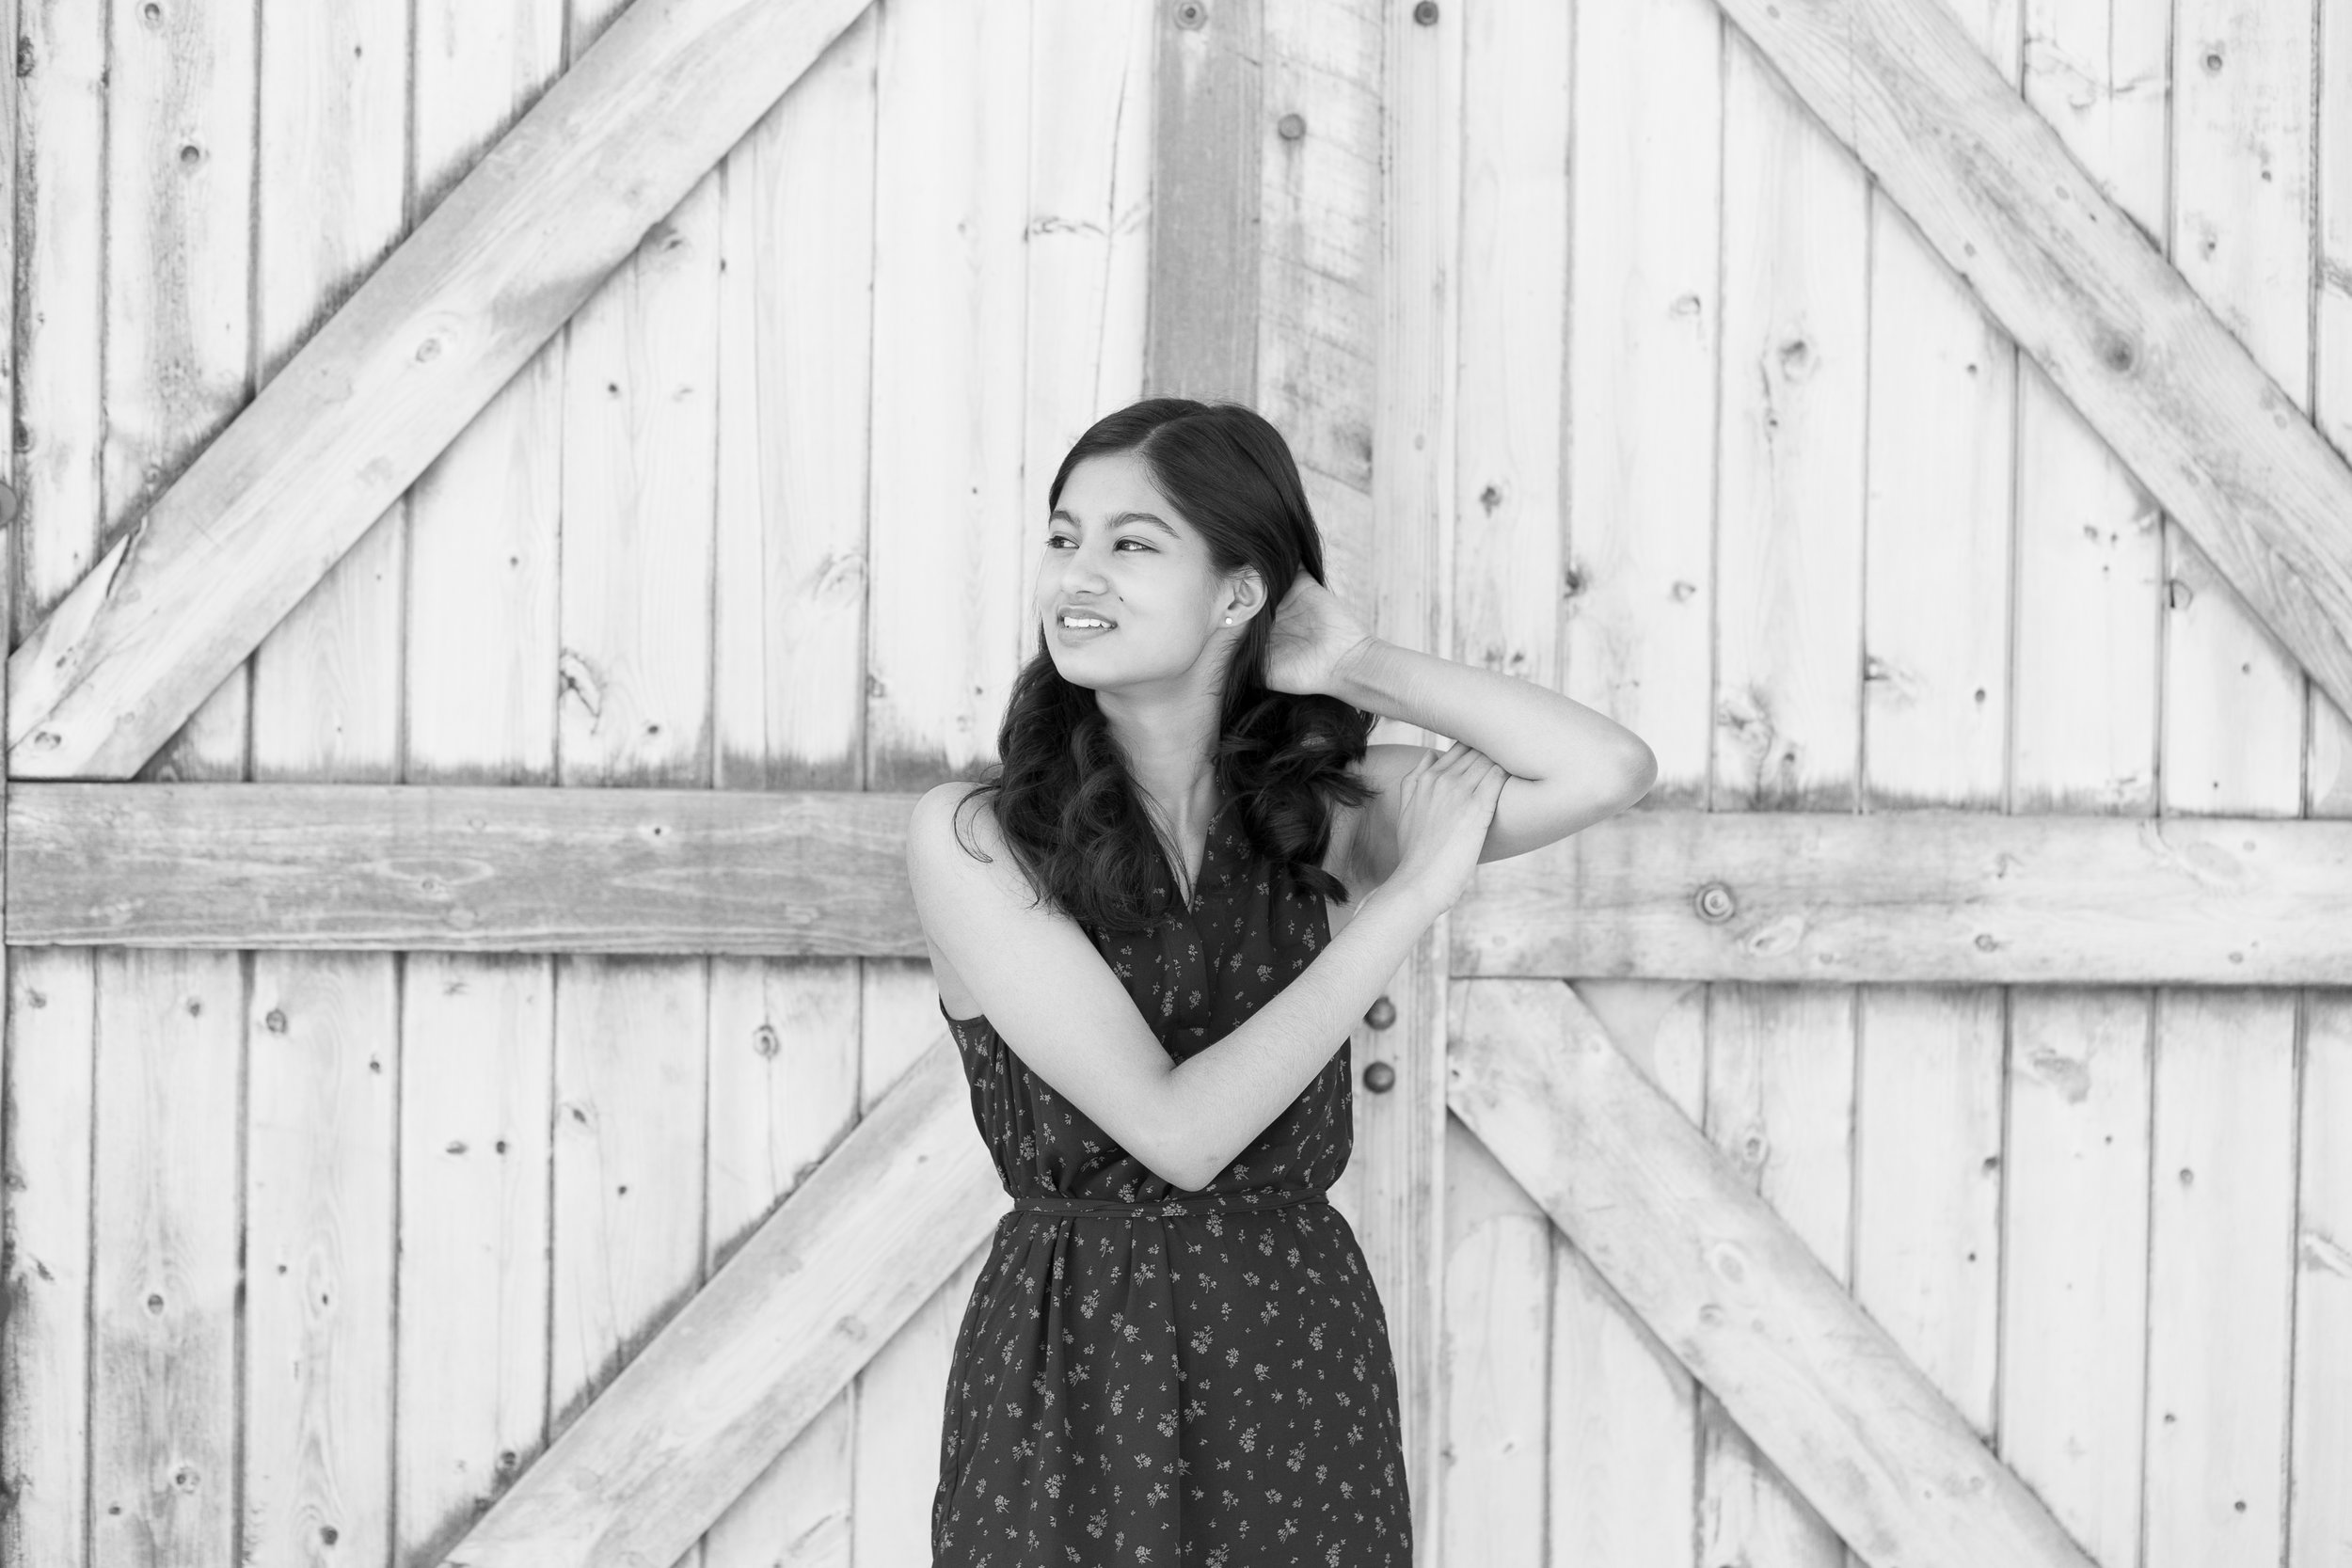 Girl posing in front of barn at Rock Ledge Ranch for her senior photos Stacy Carosa Photography Colorado Springs Senior Photographer Session at Rock Ledge Ranch